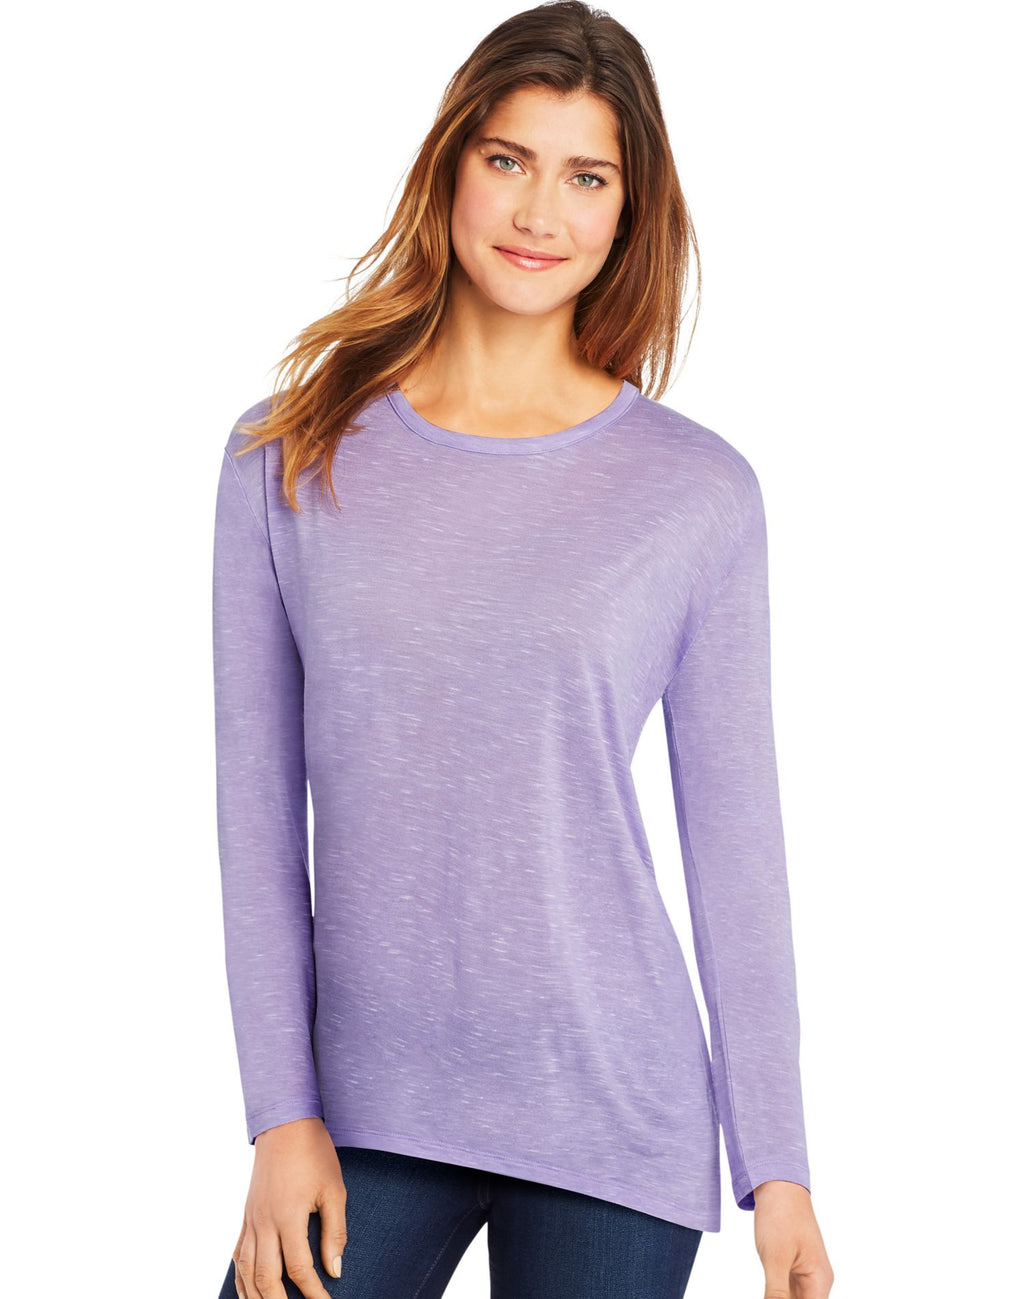 Hanes Womens Long-Sleeve Top with Center Back Lace Detail